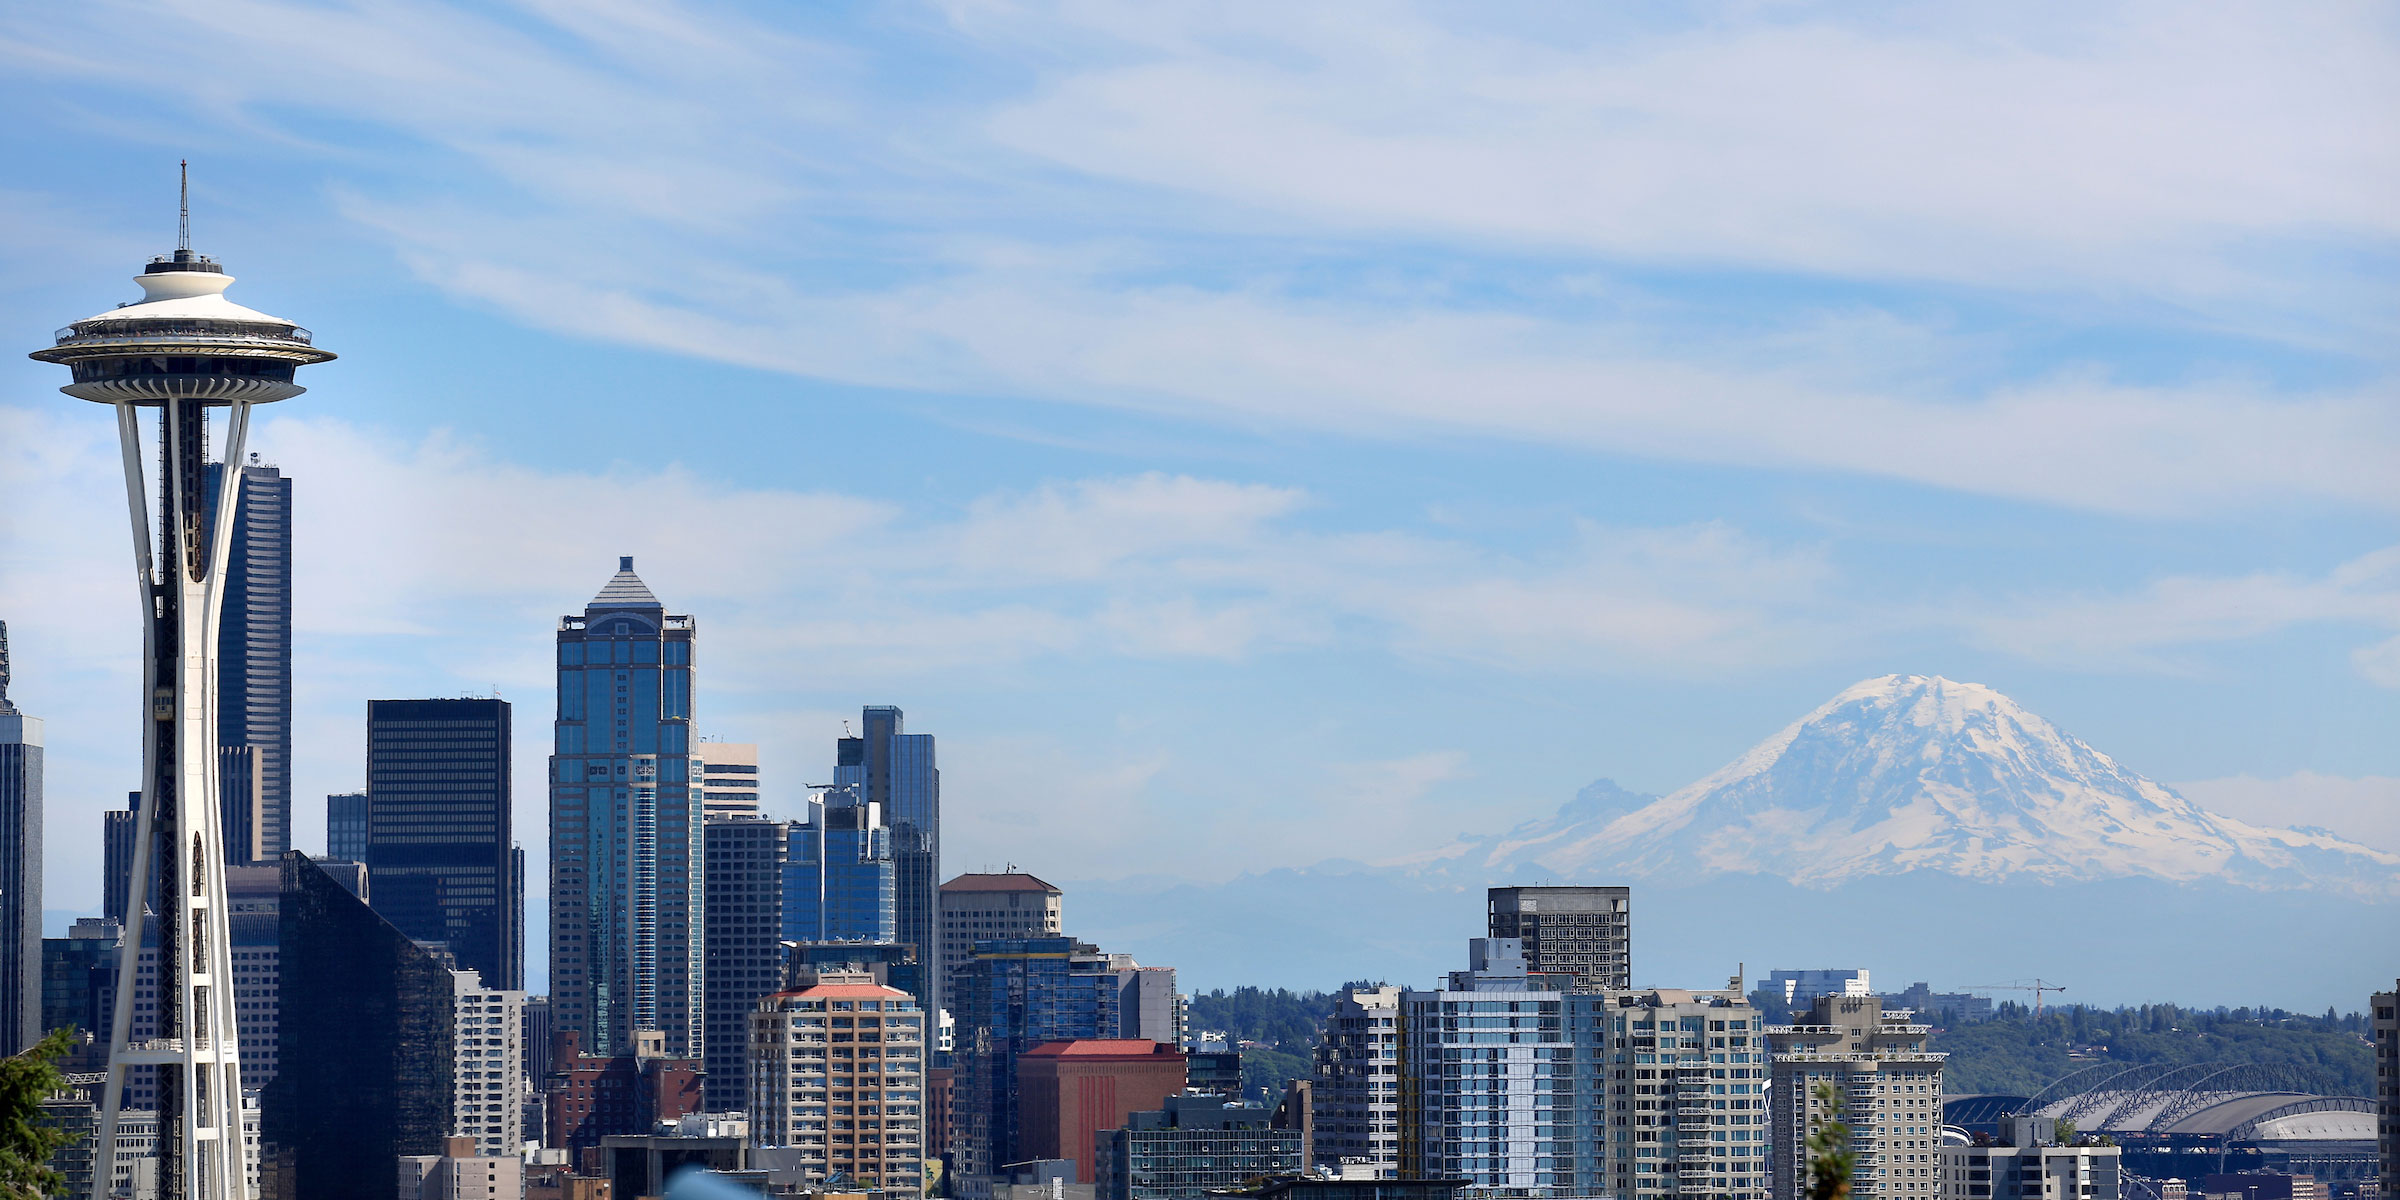 downtown Seattle skyline with space needle and Mt. Rainier shot from Kerry Park